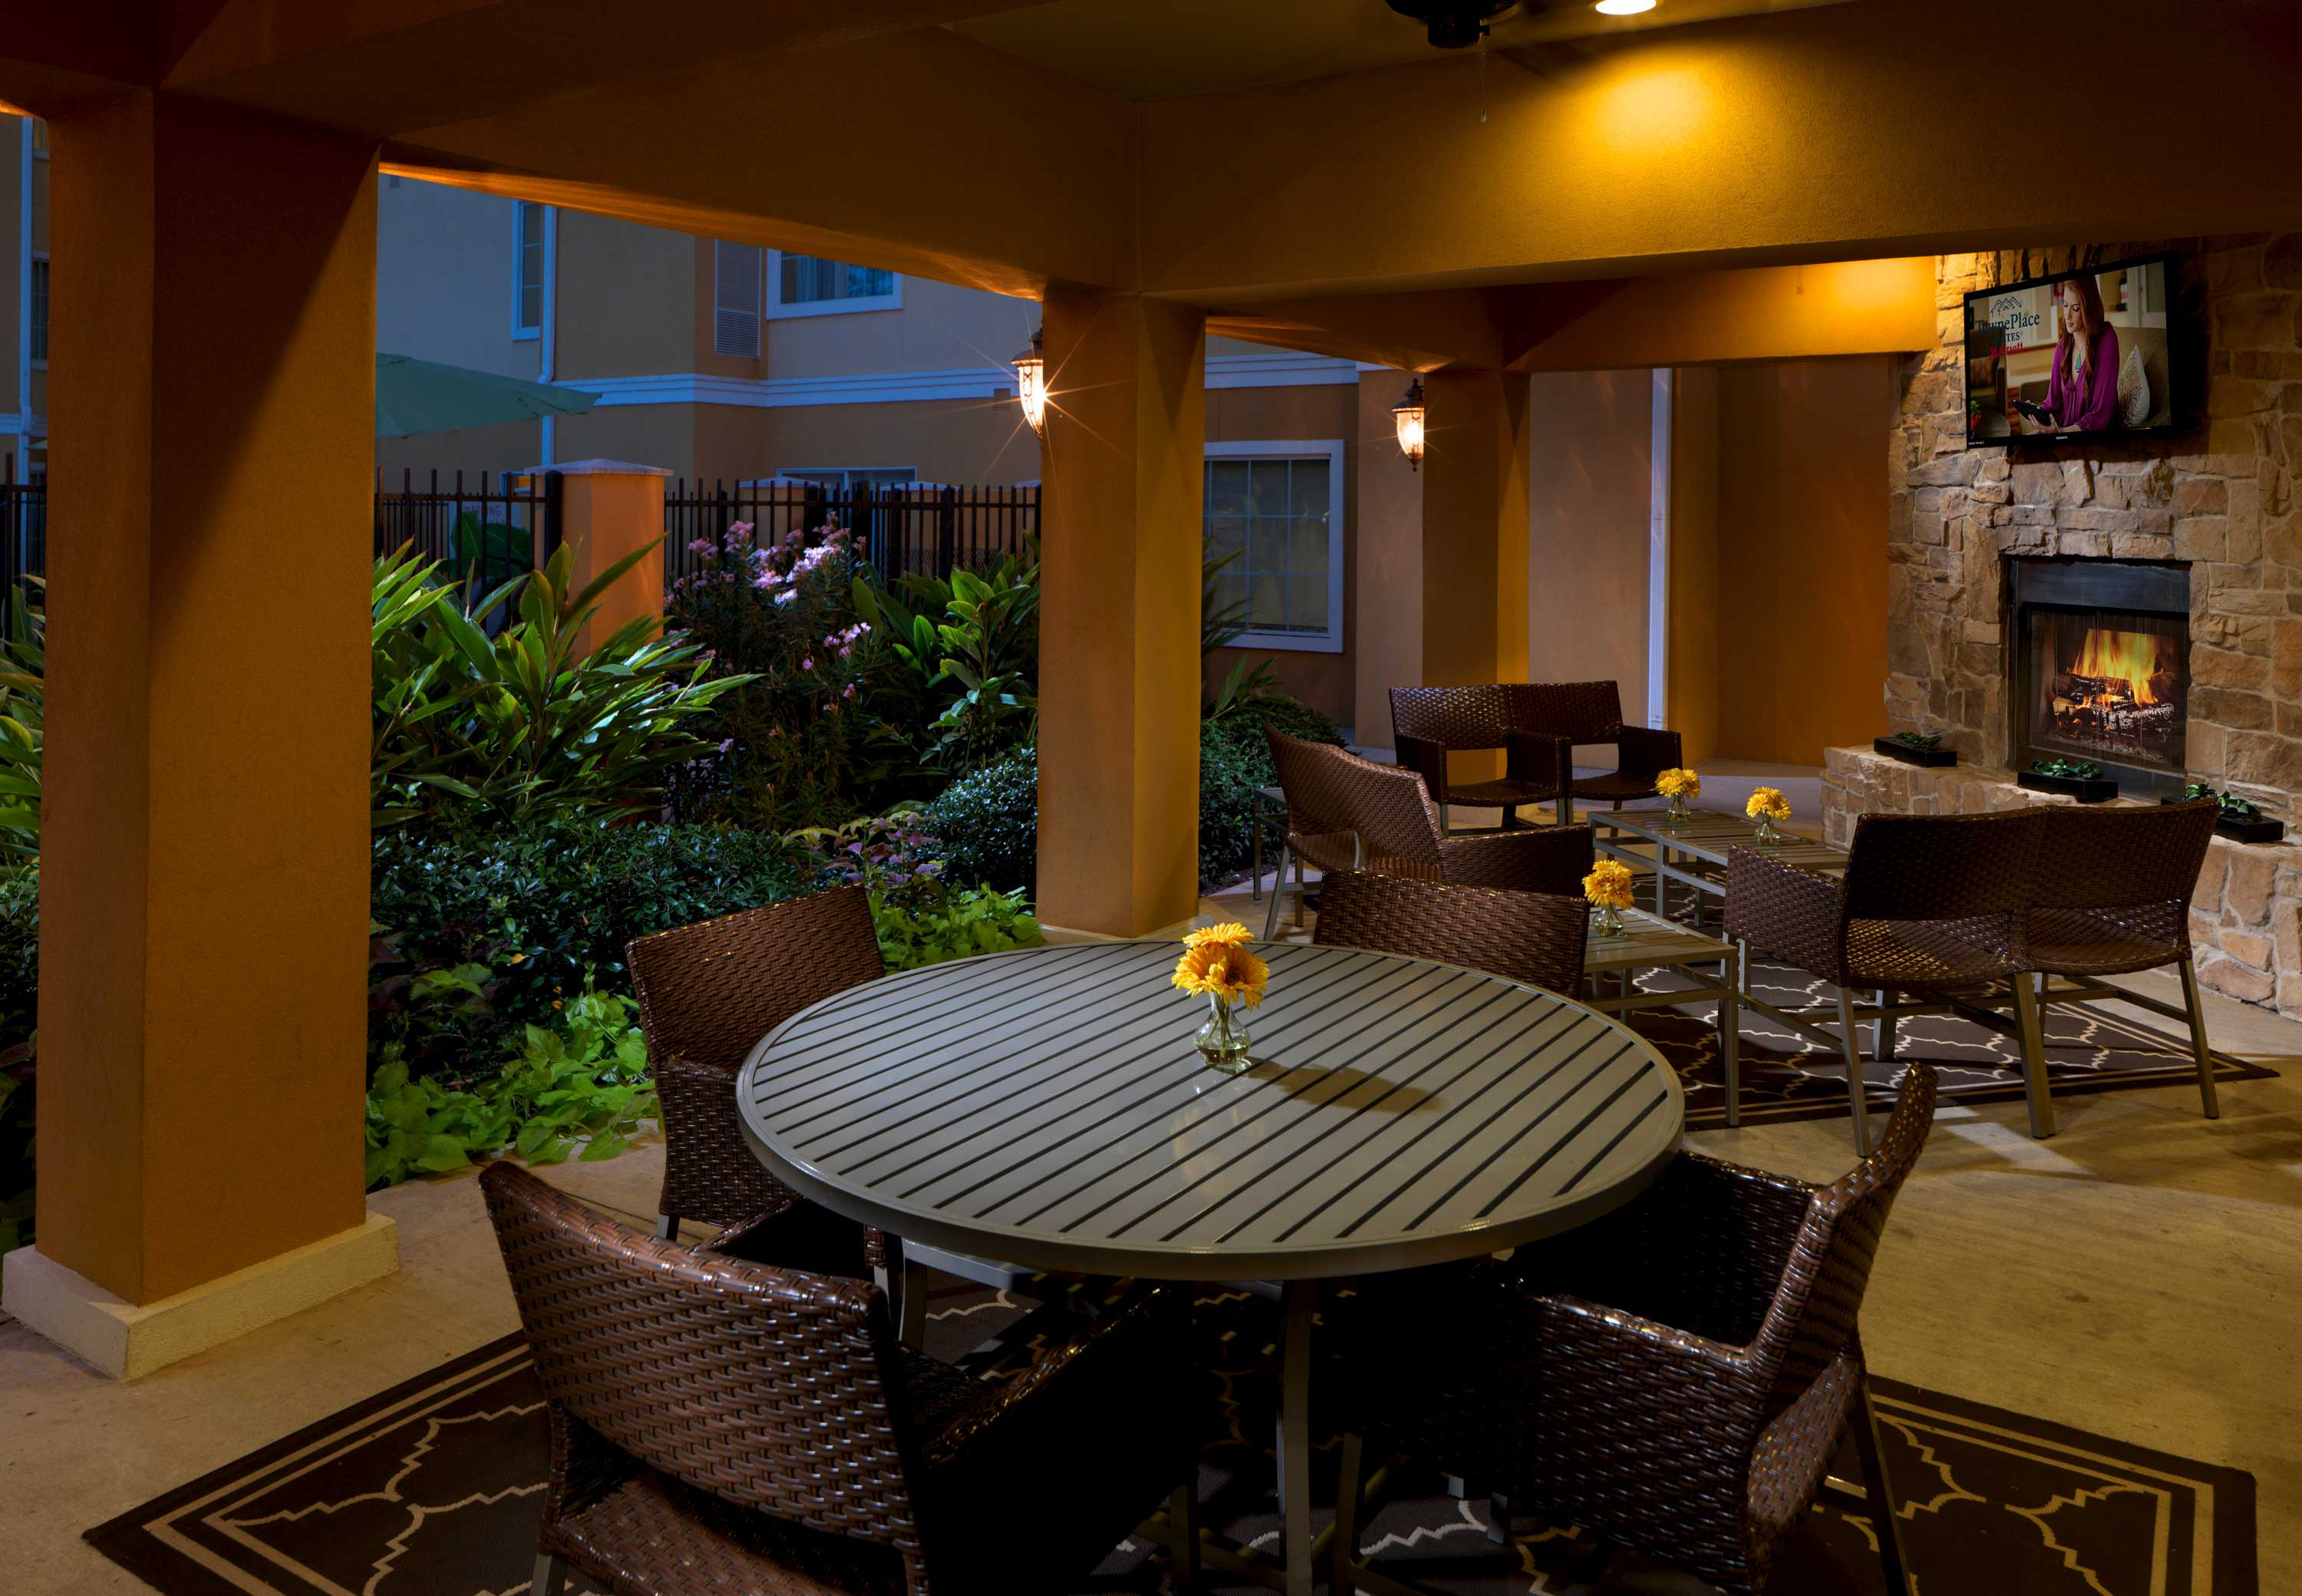 TownePlace Suites by Marriott Houston North/Shenandoah image 1